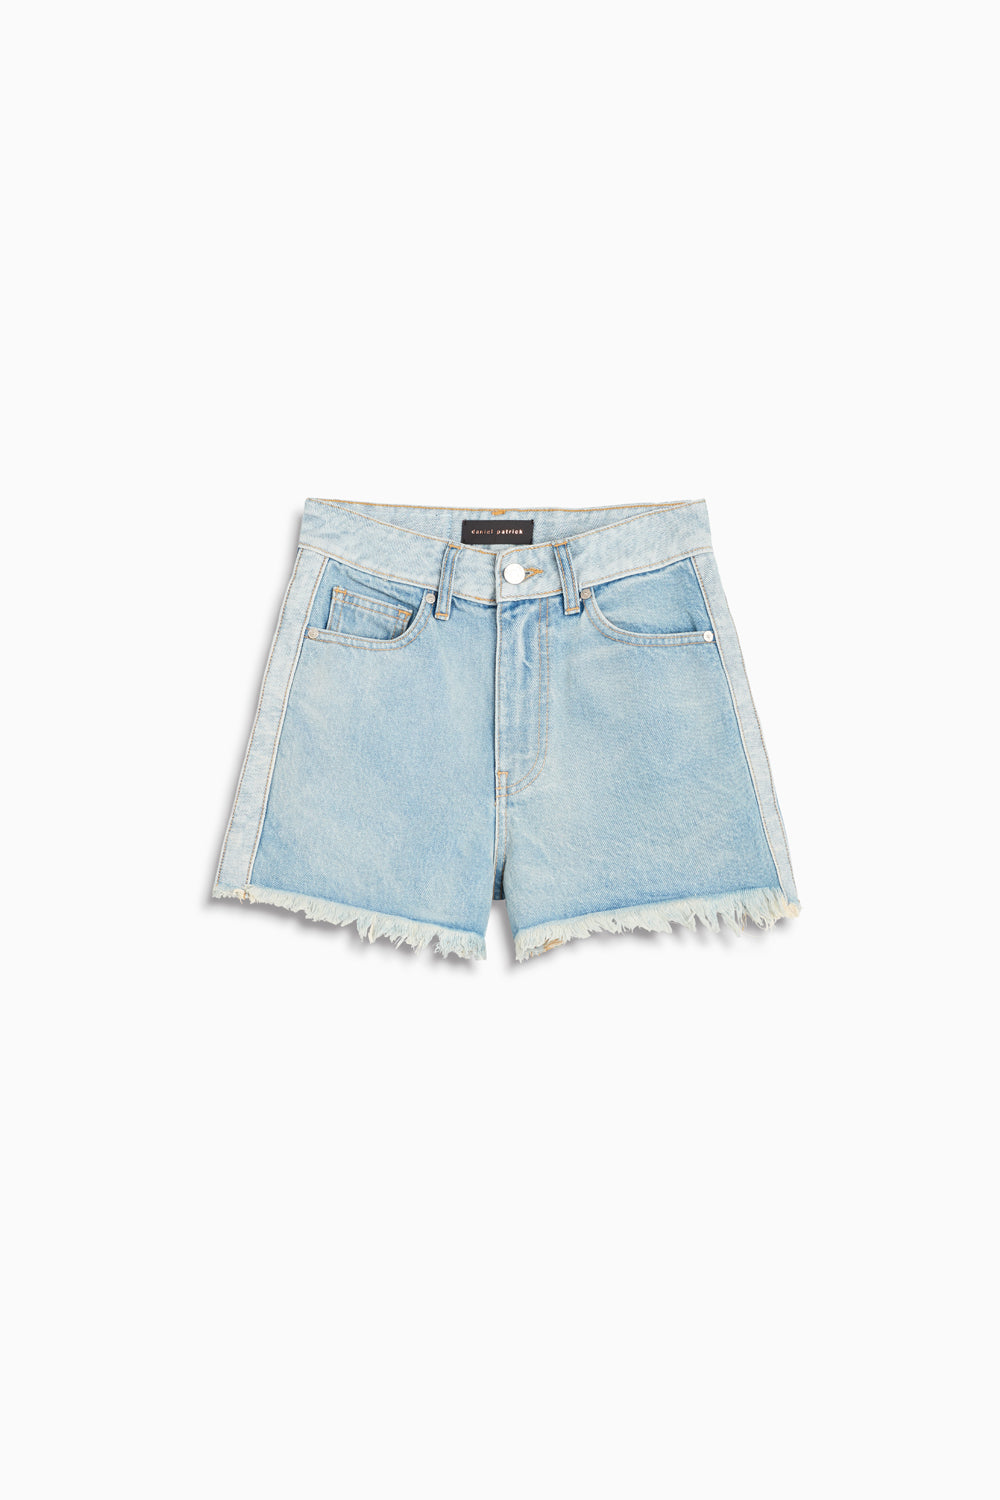 womens reverse panel high waisted denim shorts in blue wash by daniel patrick